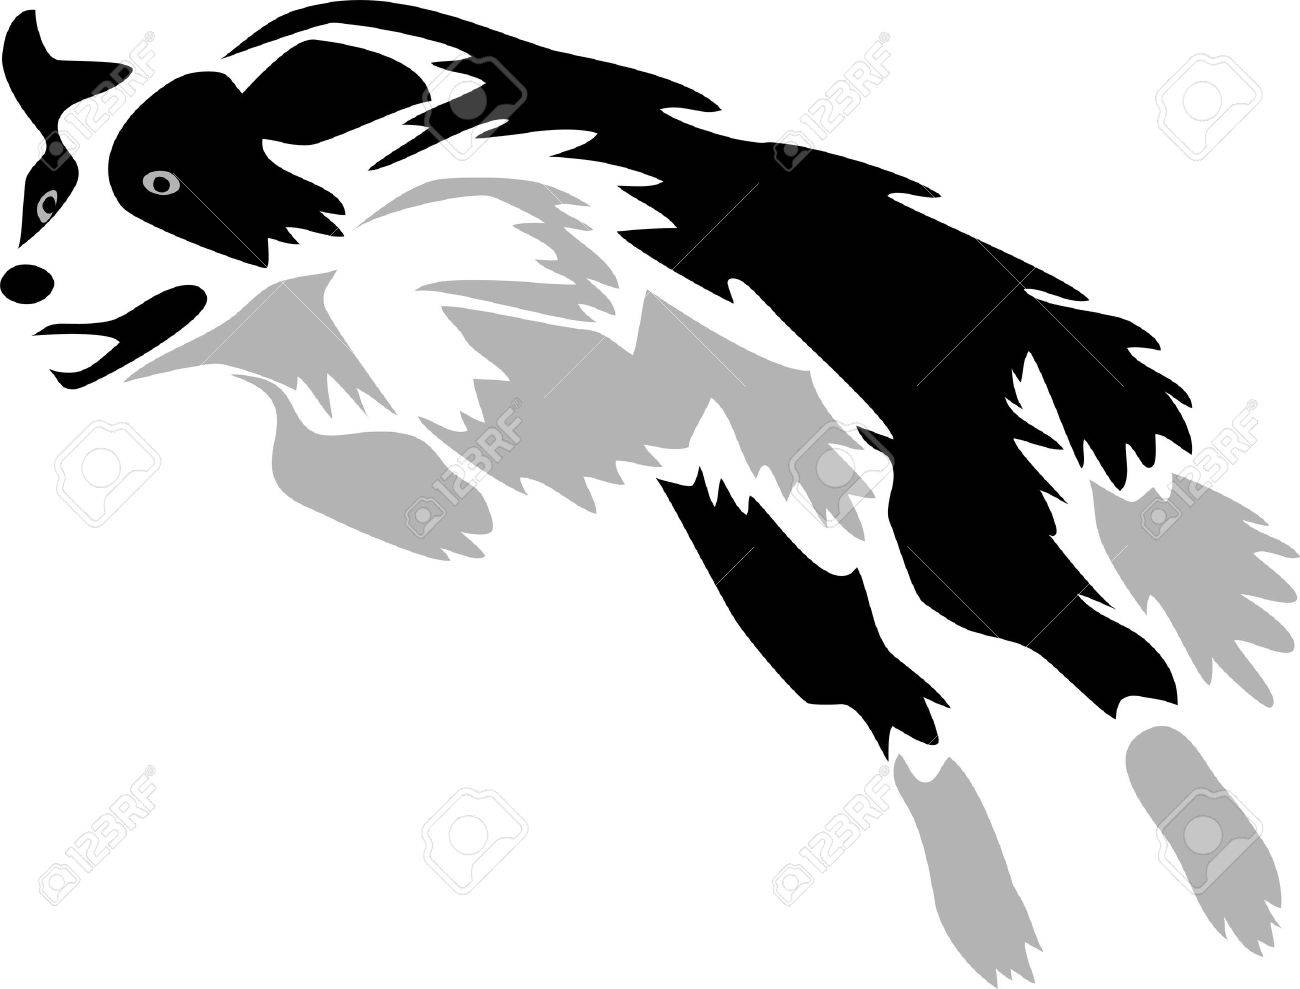 413 border collie cliparts stock vector and royalty free border rh 123rf com border collie clip art free border collie clip art free